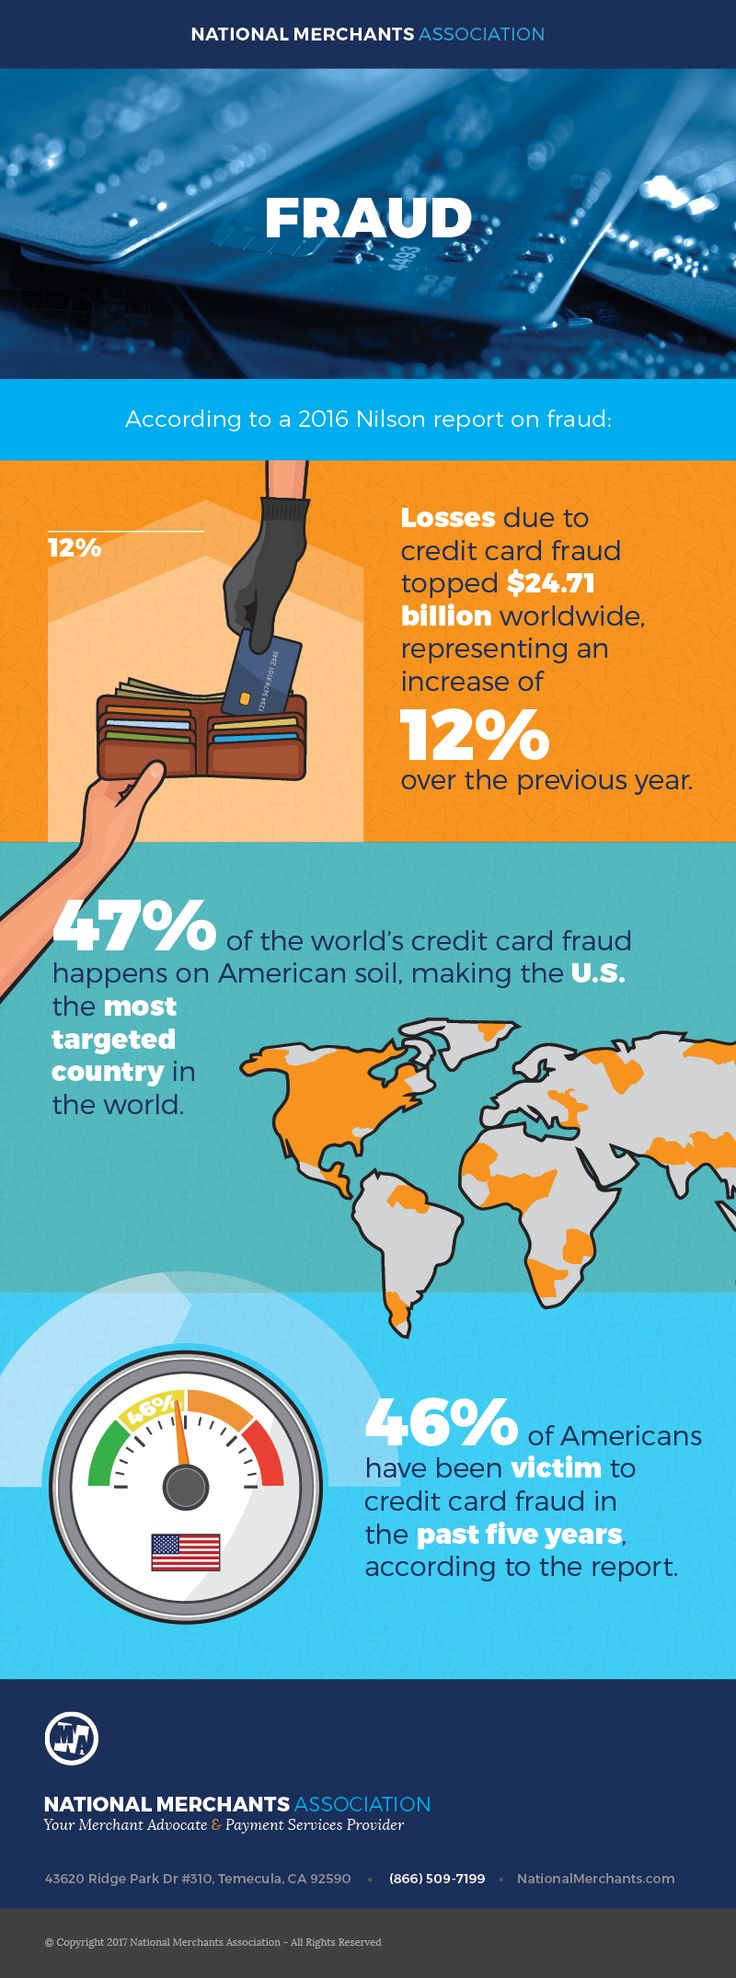 Pin by national merchants association on nma infographics